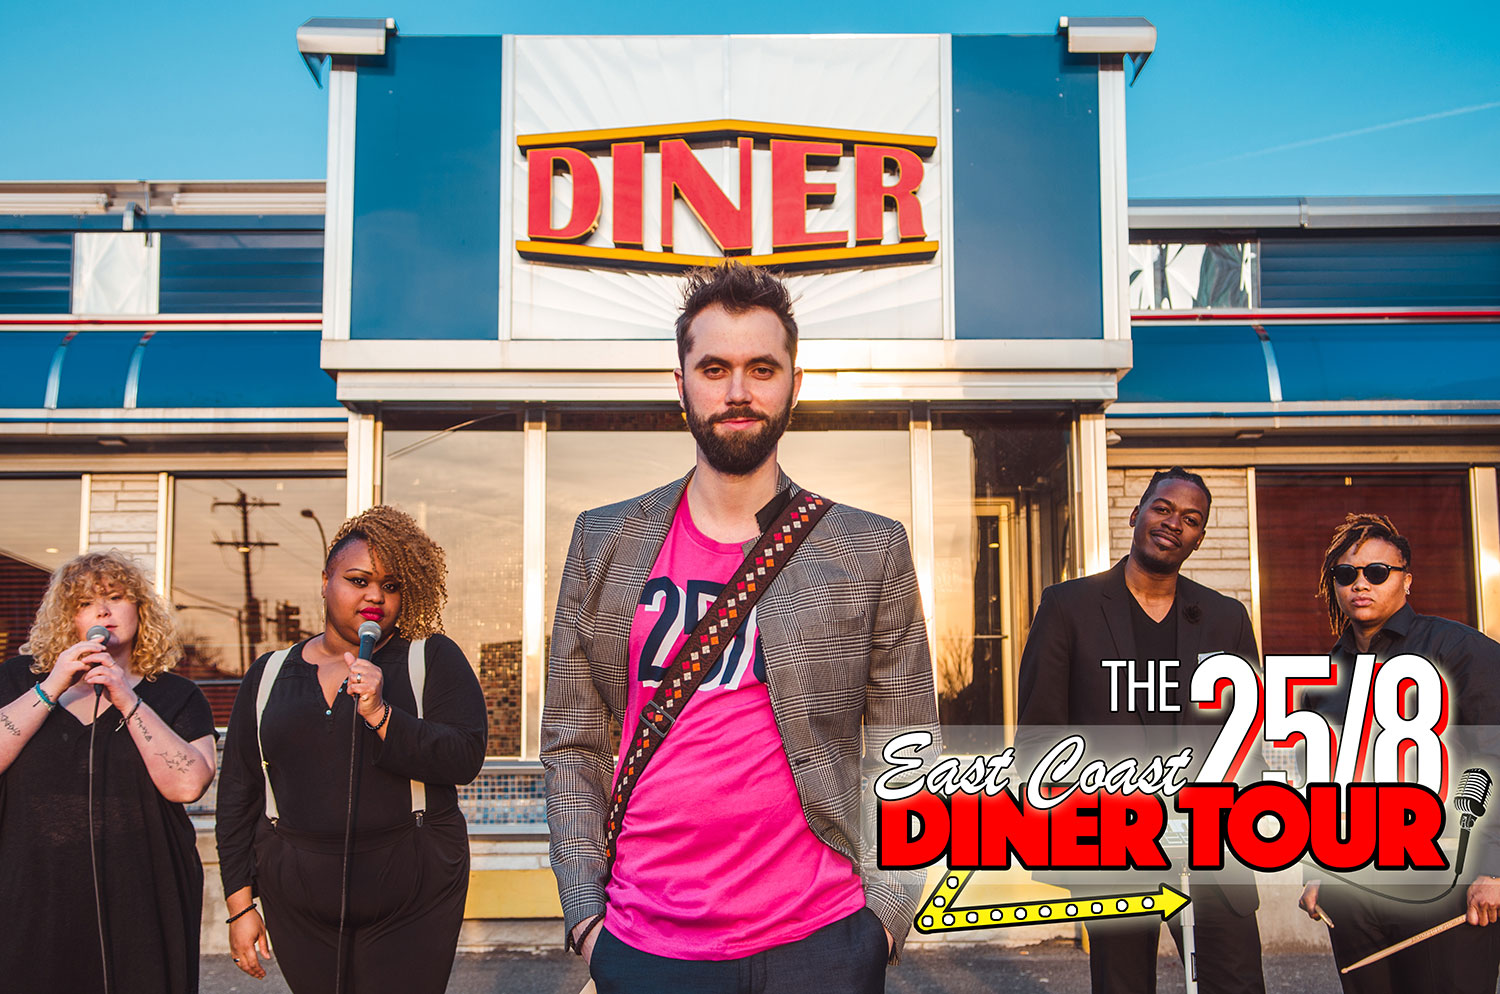 24/7, Why Not 25/8 with the East Coast Diner Tour